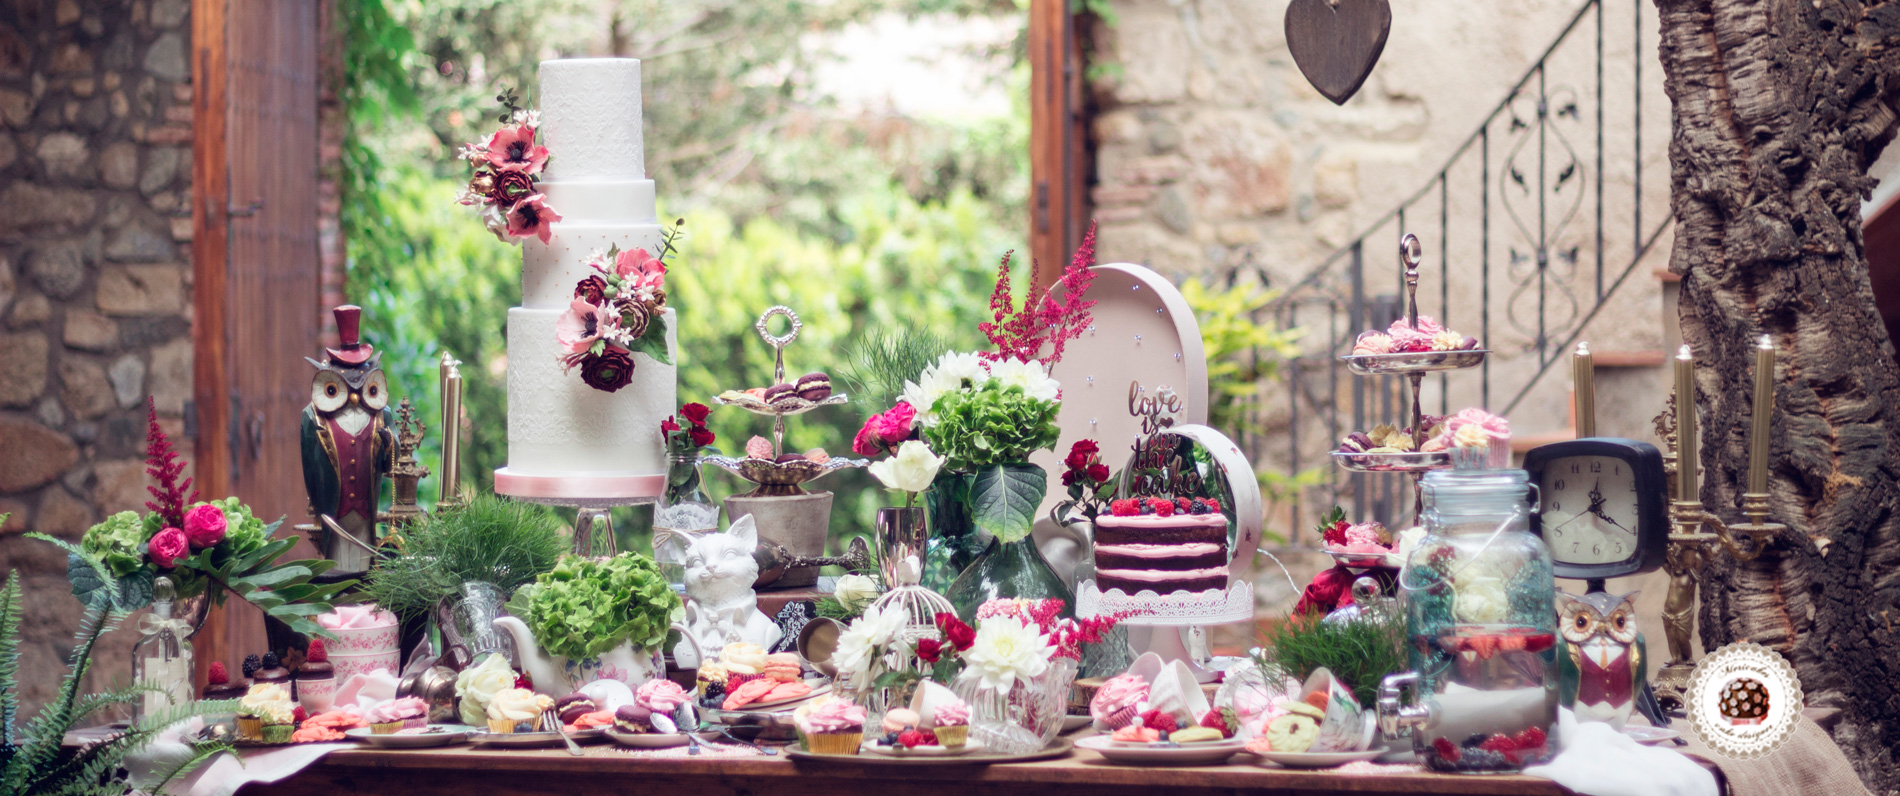 mesa-dulce-candy-bar-bodas-girona-sweet-table-mericakes-wedding-cake-tarta-de-boda-macarons-galletas-naked-cake-sugarcraft-cookies